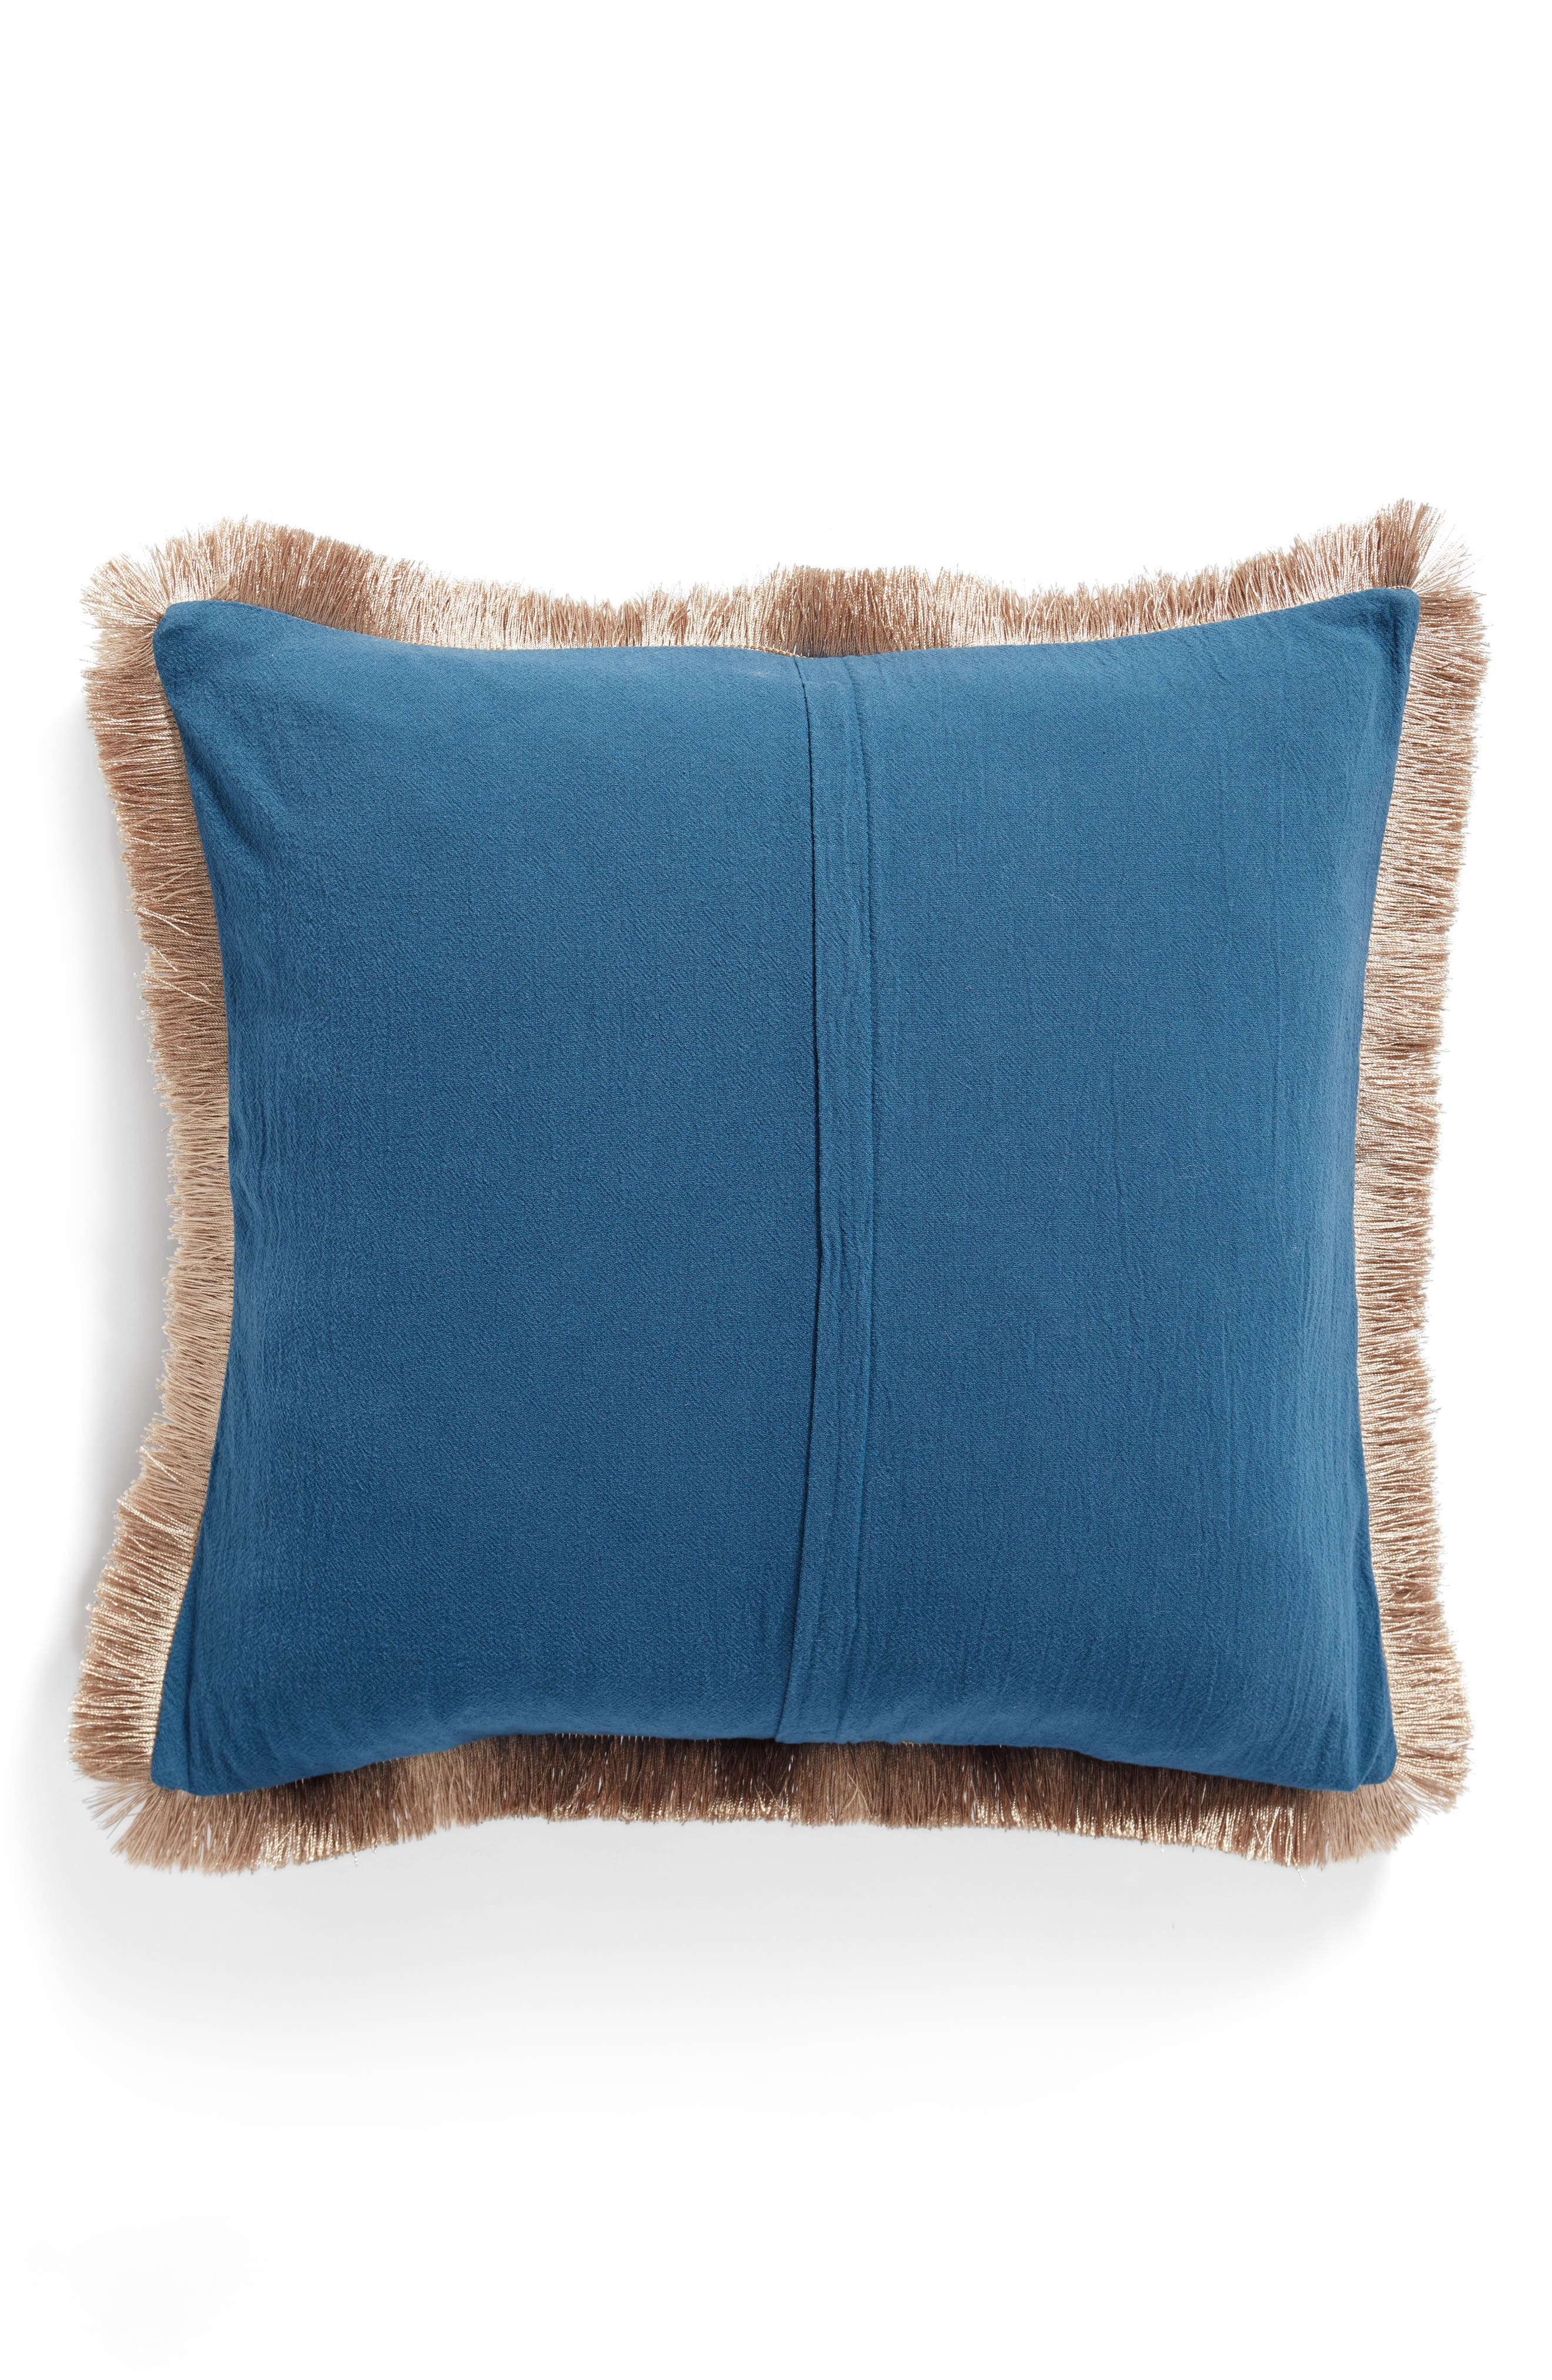 Beckett Wild & Free Pillow,                             Alternate thumbnail 2, color,                             Blue